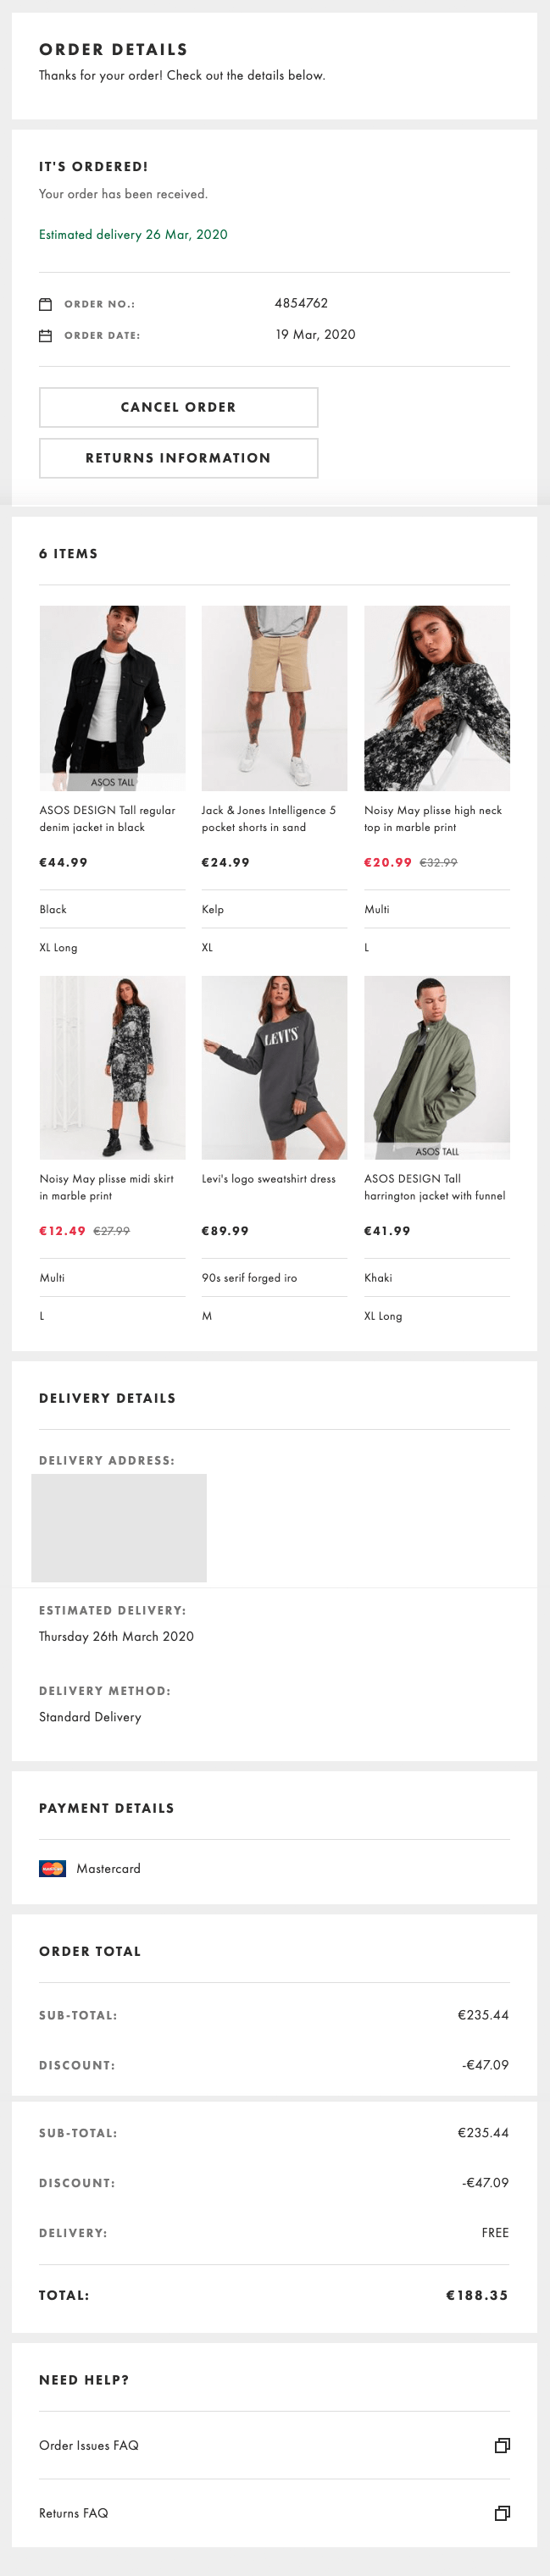 Asos order confirmation page with order details